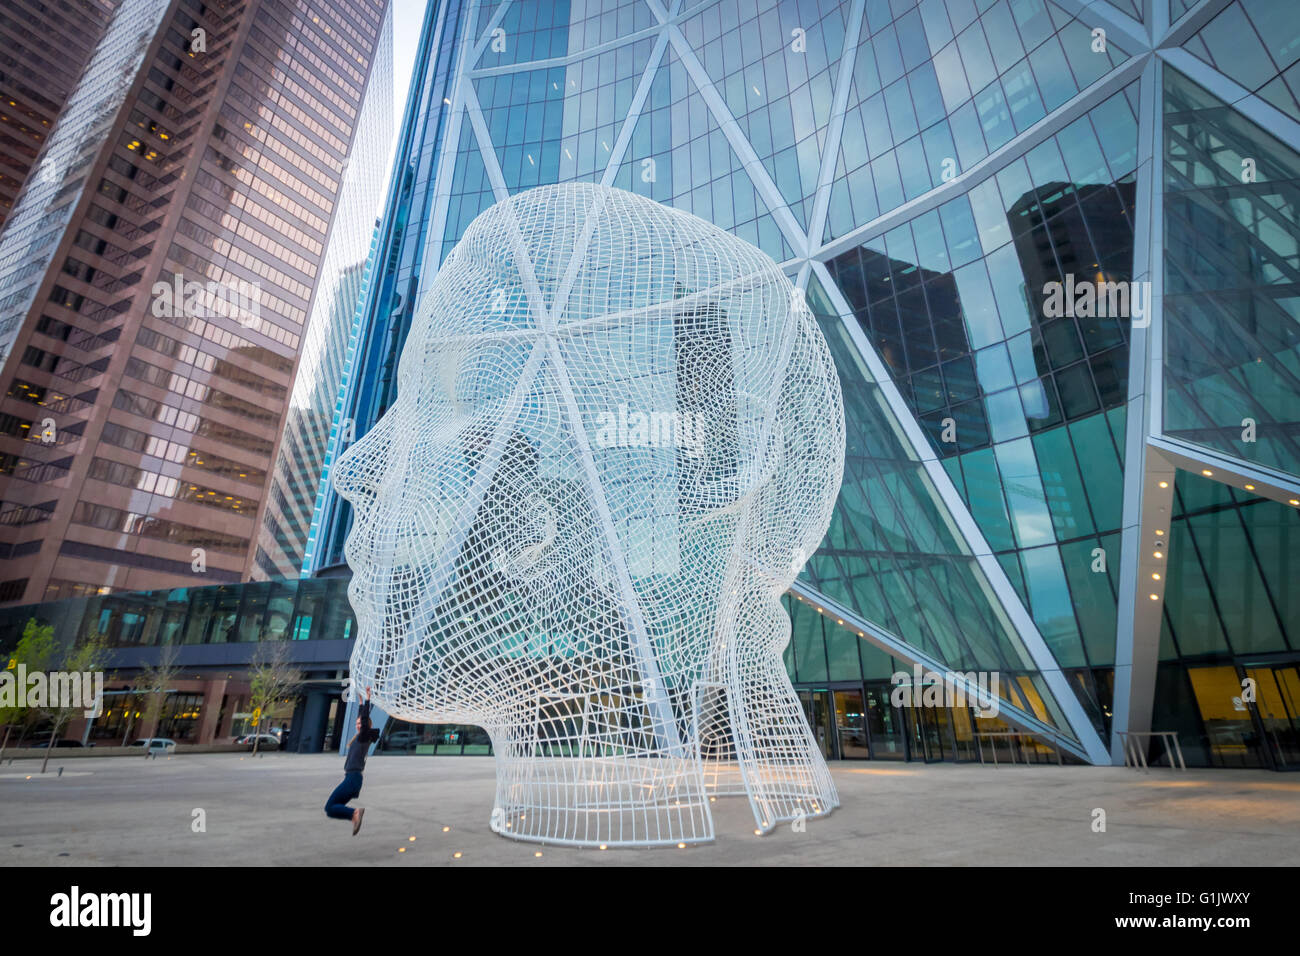 A view of the sculpture Wonderland by Jaume Plensa, in front of The Bow skyscraper in Calgary, Alberta, Canada. - Stock Image